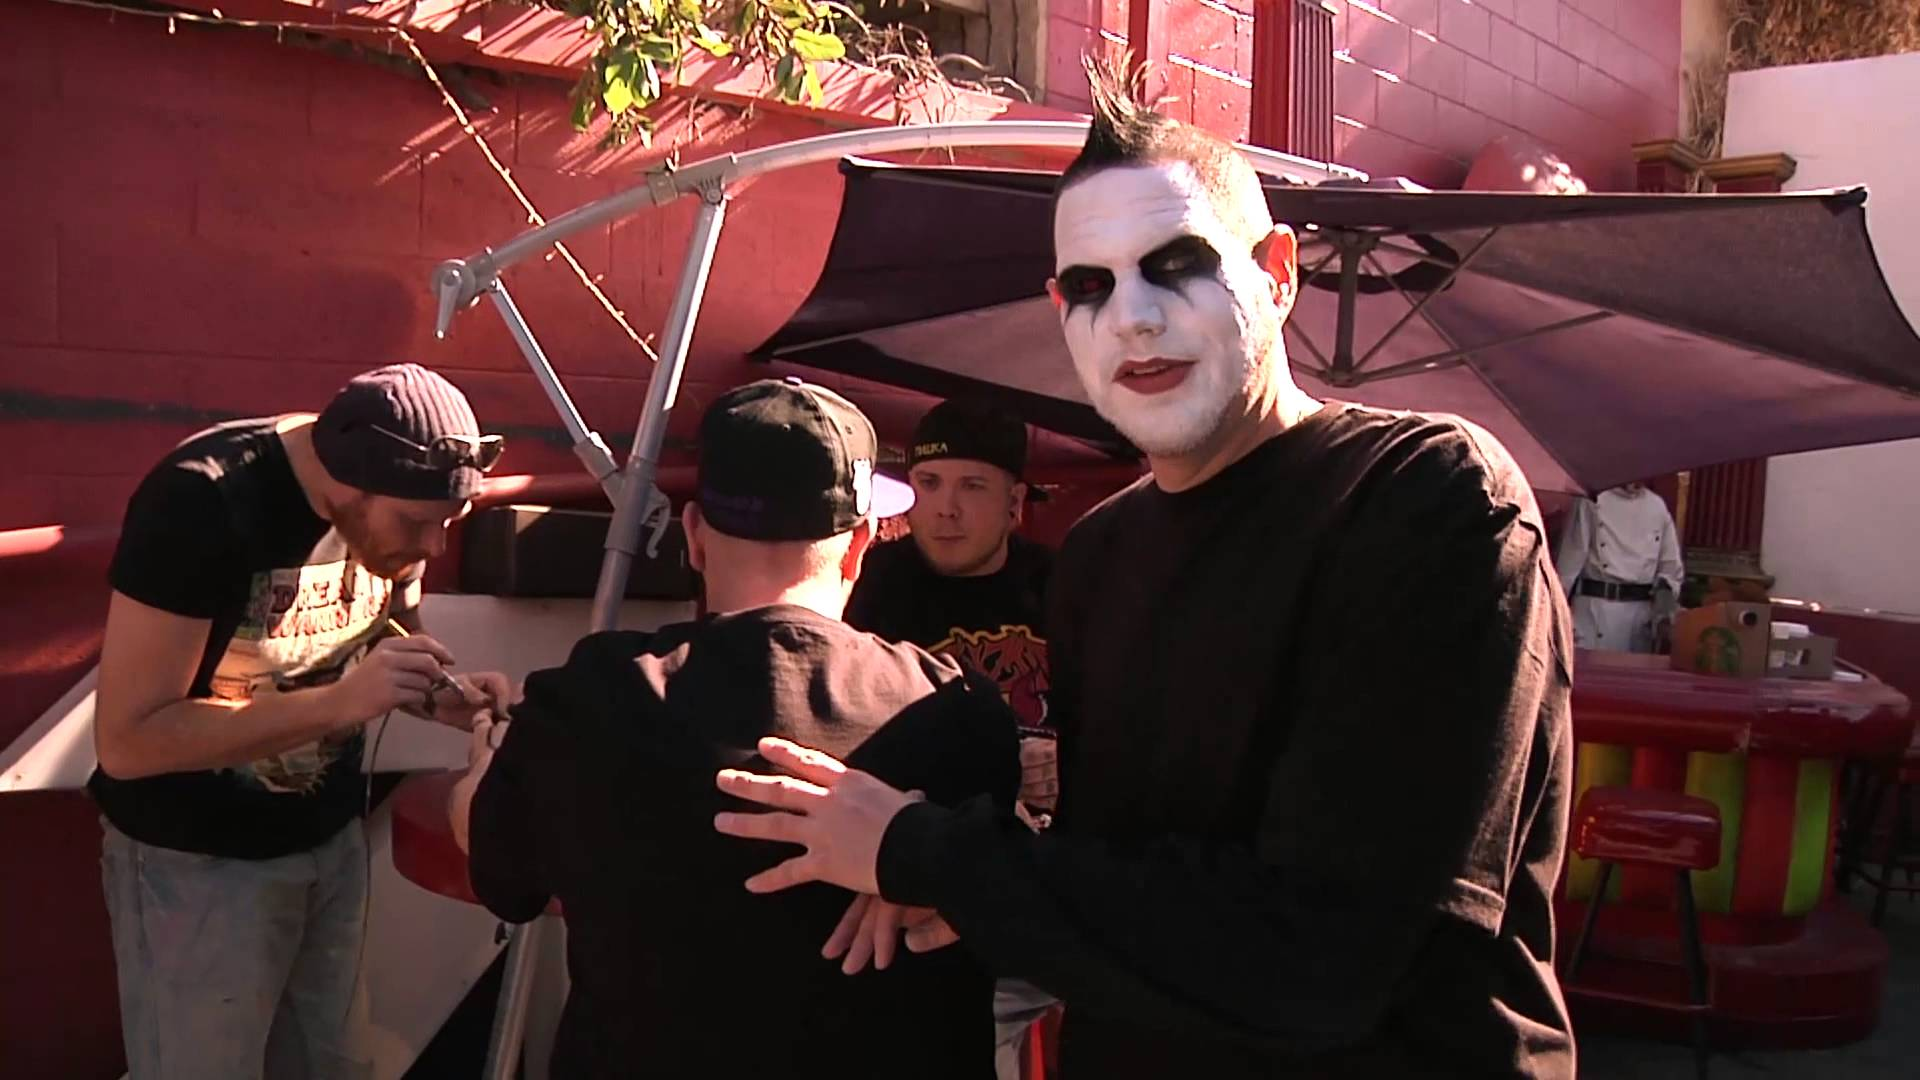 Twiztid announce fifth annual Christmas show Twiztmas